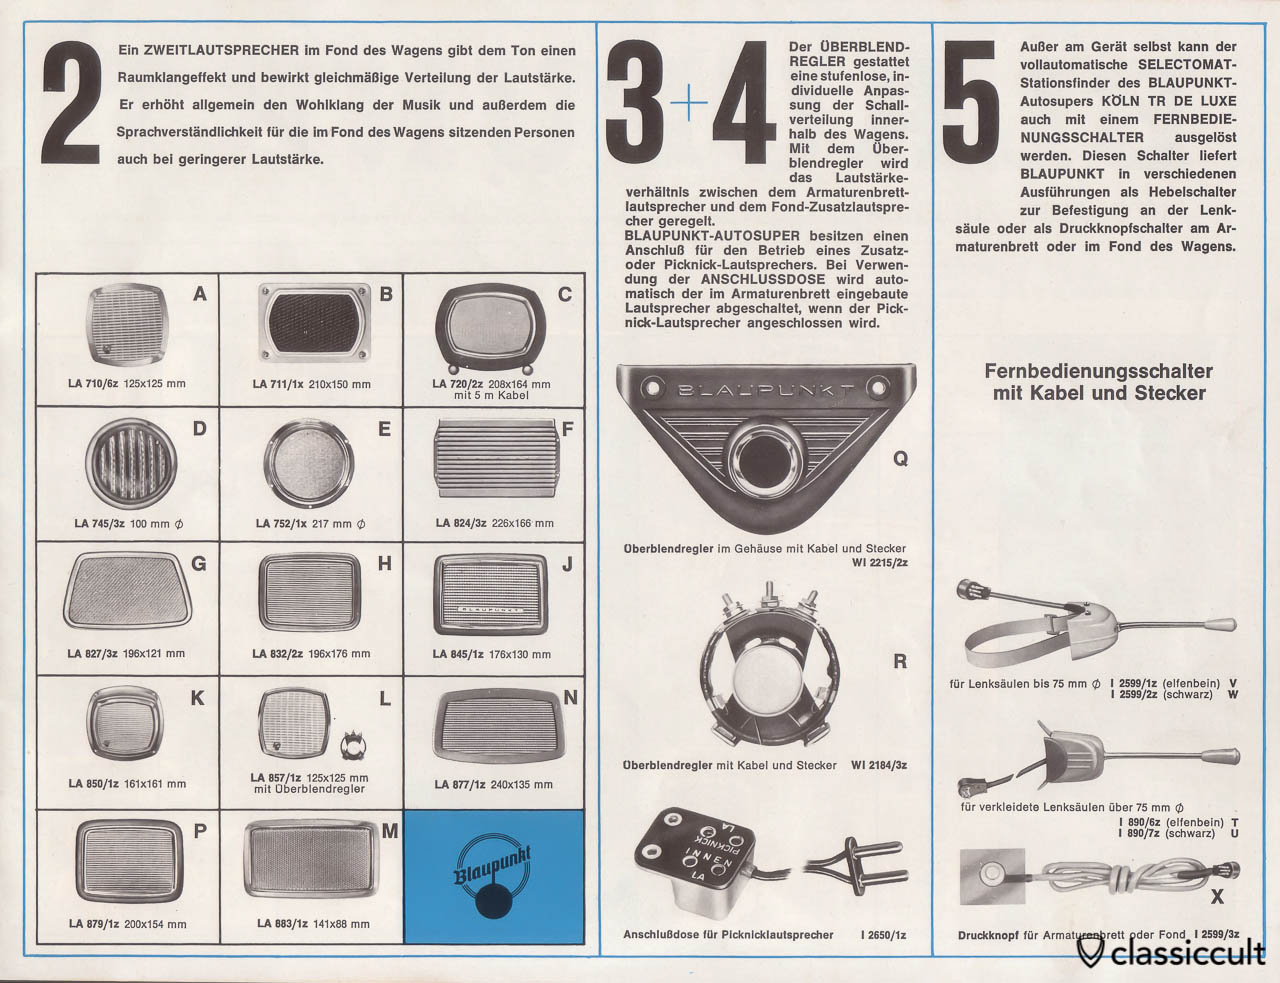 Blaupunkt picnic speaker connector in Blaupunkt car radio brochure 1963.